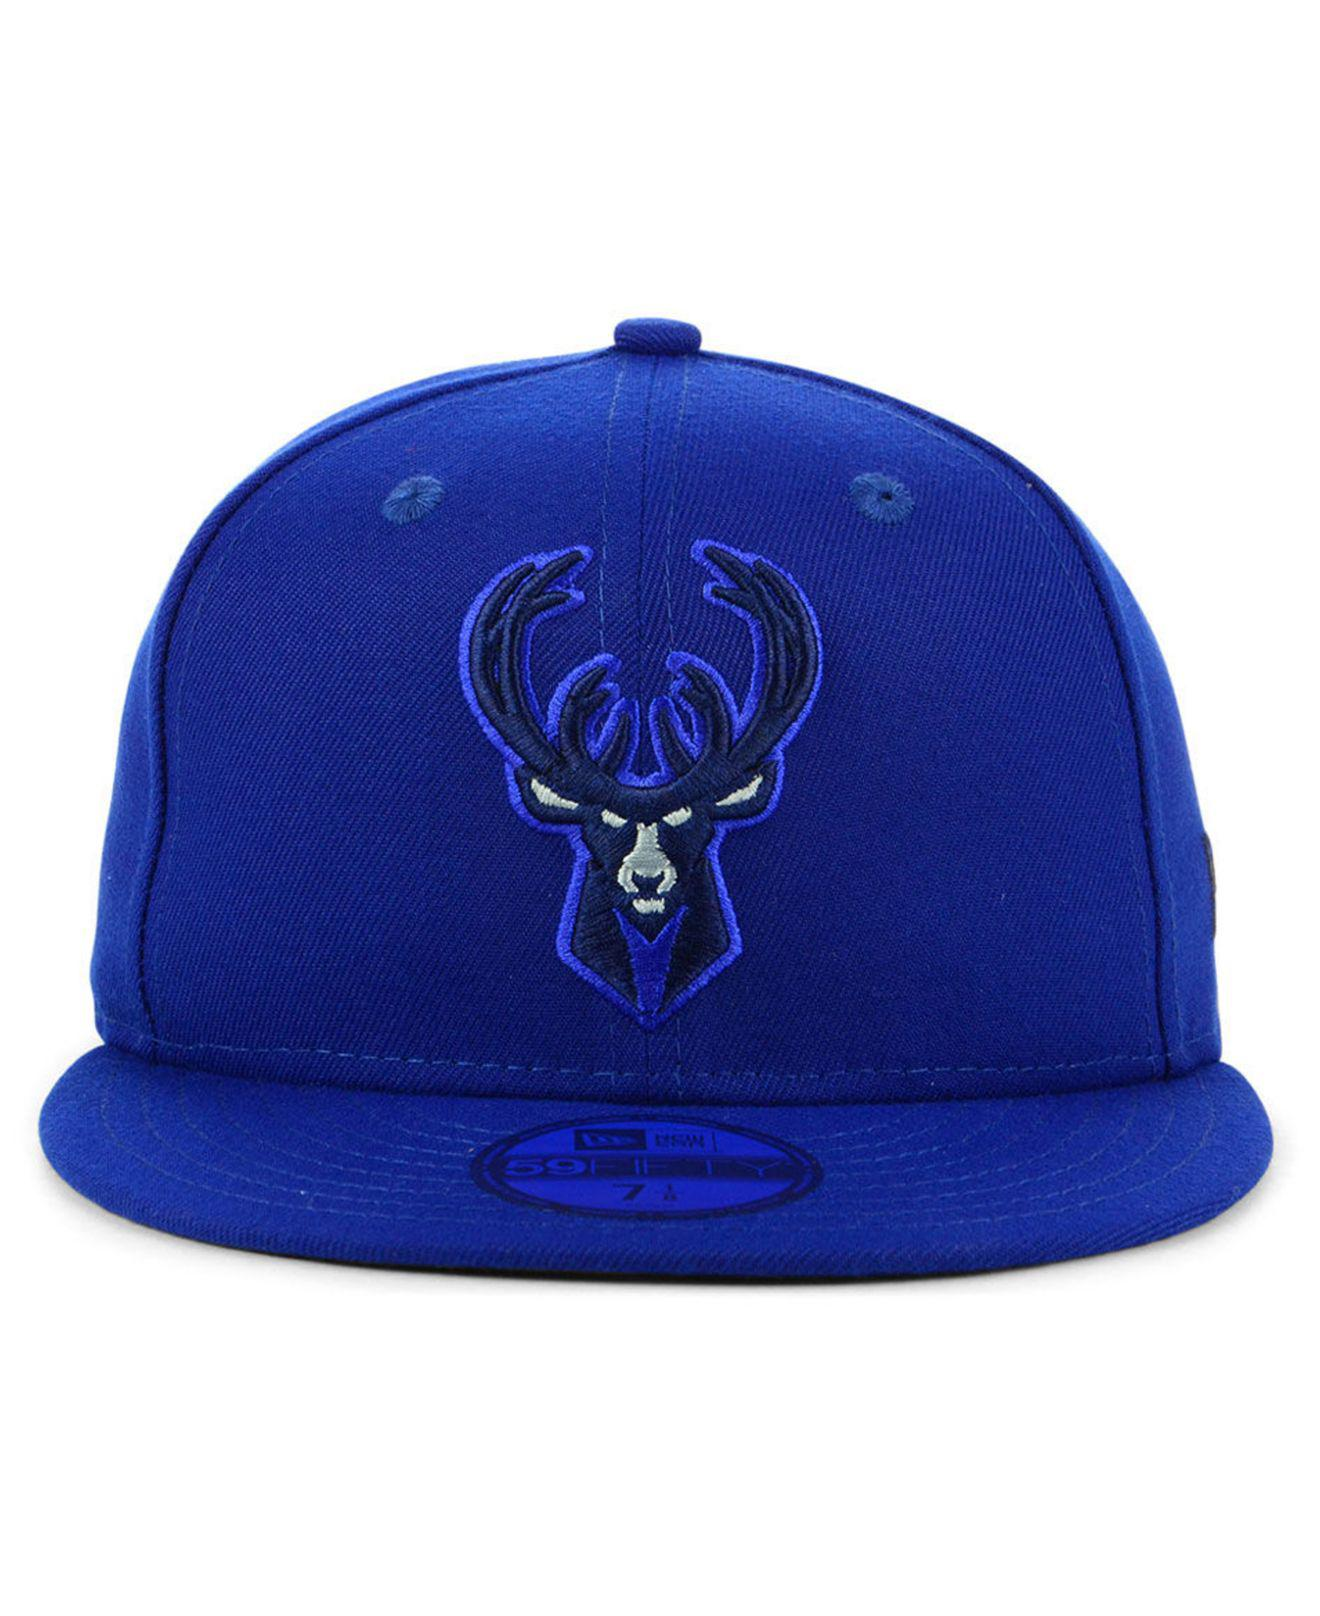 wholesale dealer 0223c 6a9c3 ... official lyst ktz milwaukee bucks color prism pack 59fifty fitted cap  in blue for men 11436